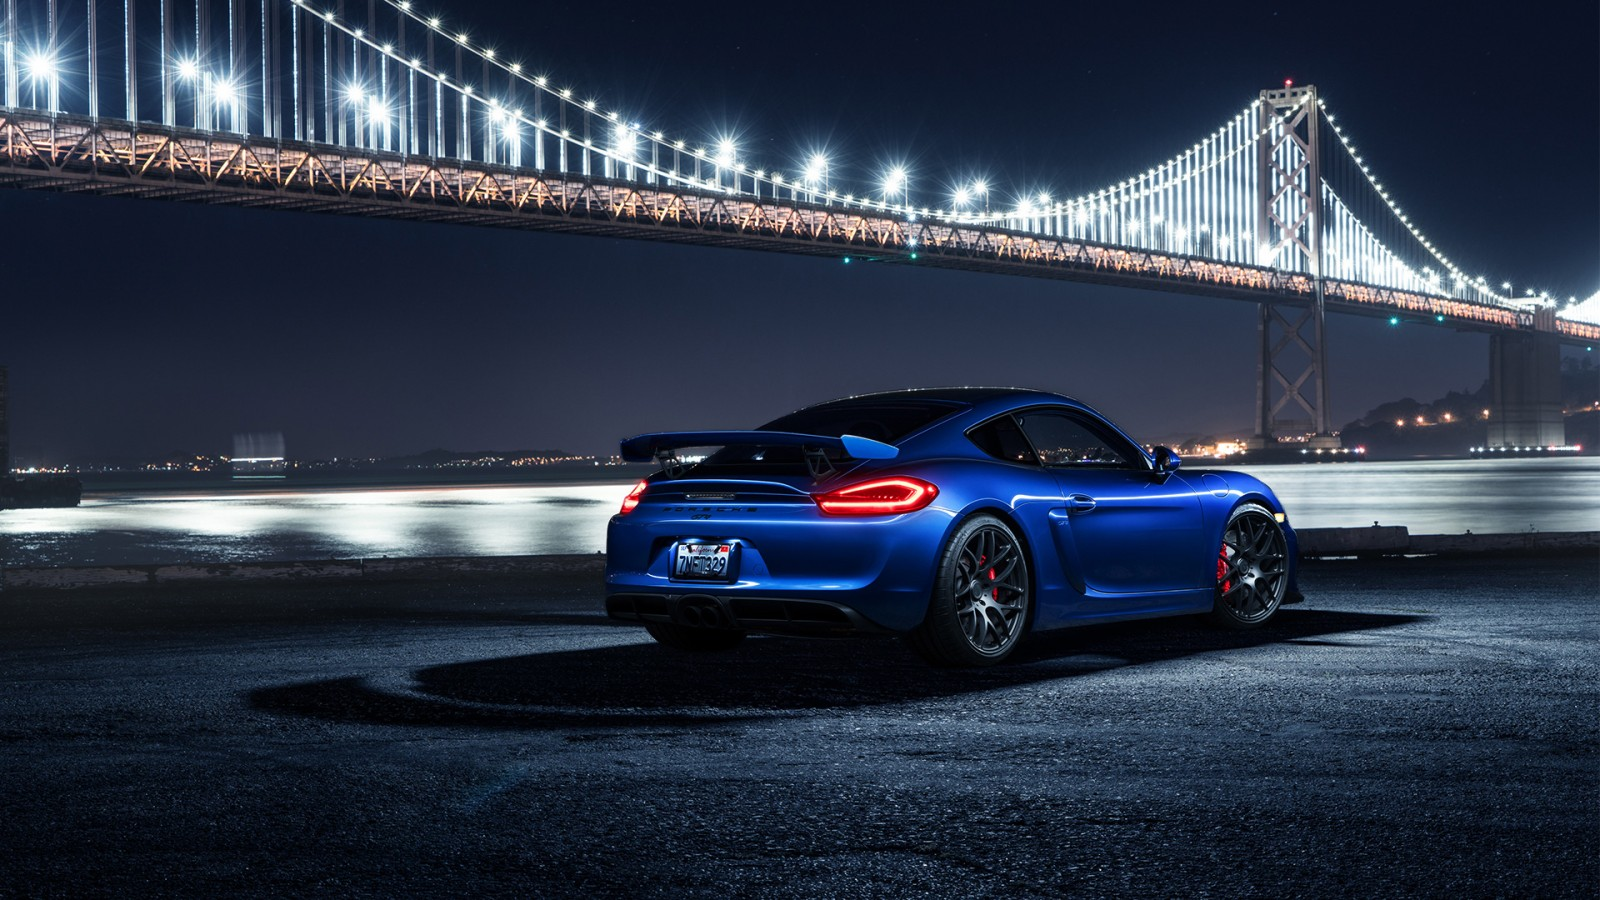 Porsche Boxster Wallpaper Hd Porsche Cayman Gt4 Avant Garde Wheels 2 Wallpaper Hd Car